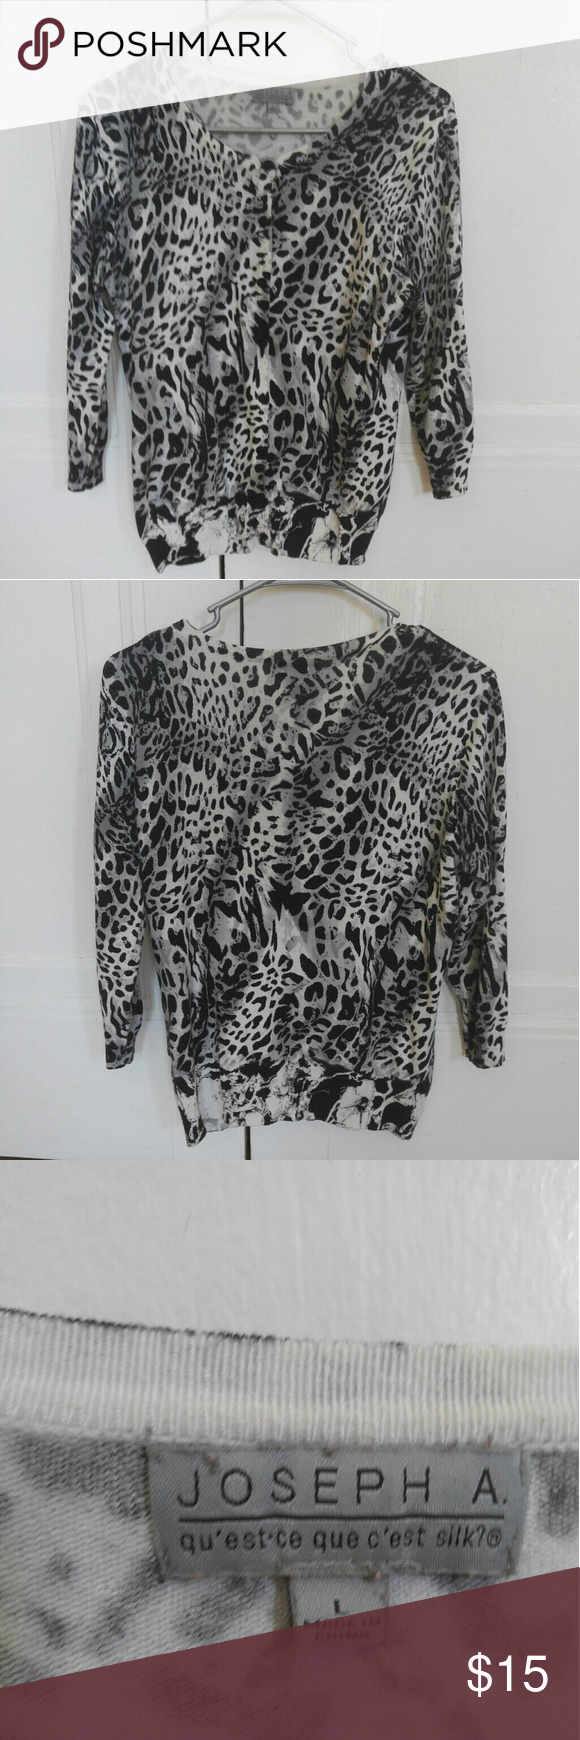 Leopard print cardigan Worn only once Joseph Banks 3/4 sleeve ...